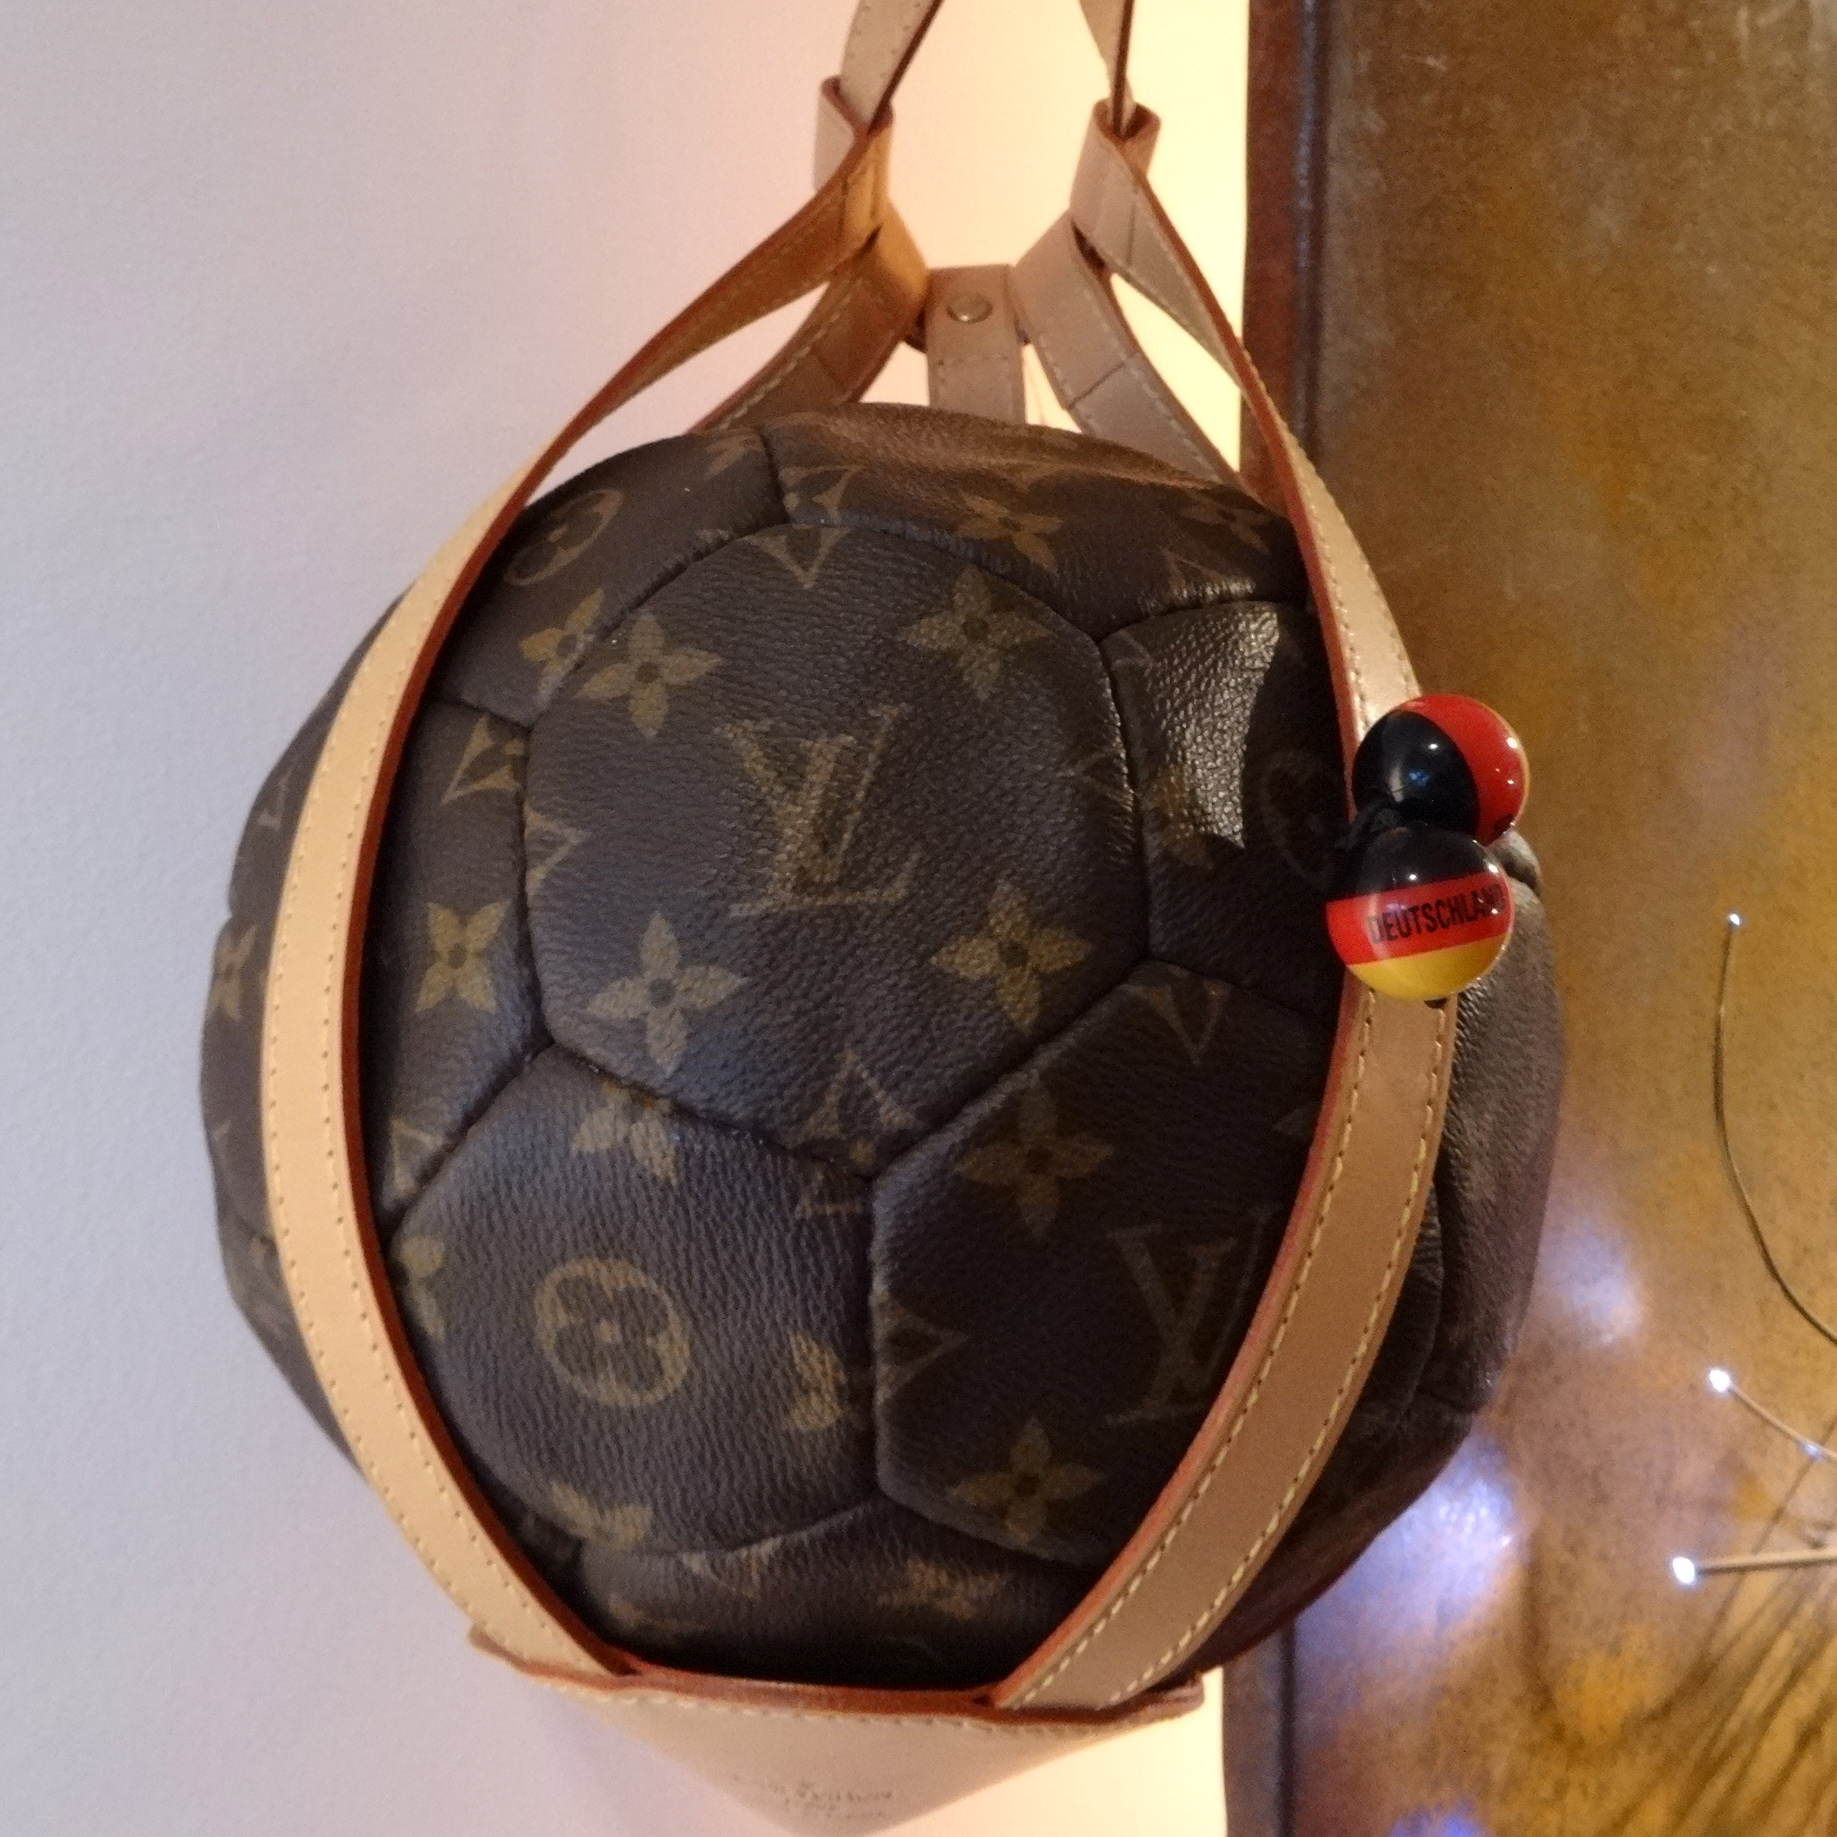 Louis Vuitton Fussball essence go go goal Haargummi HappyFace313